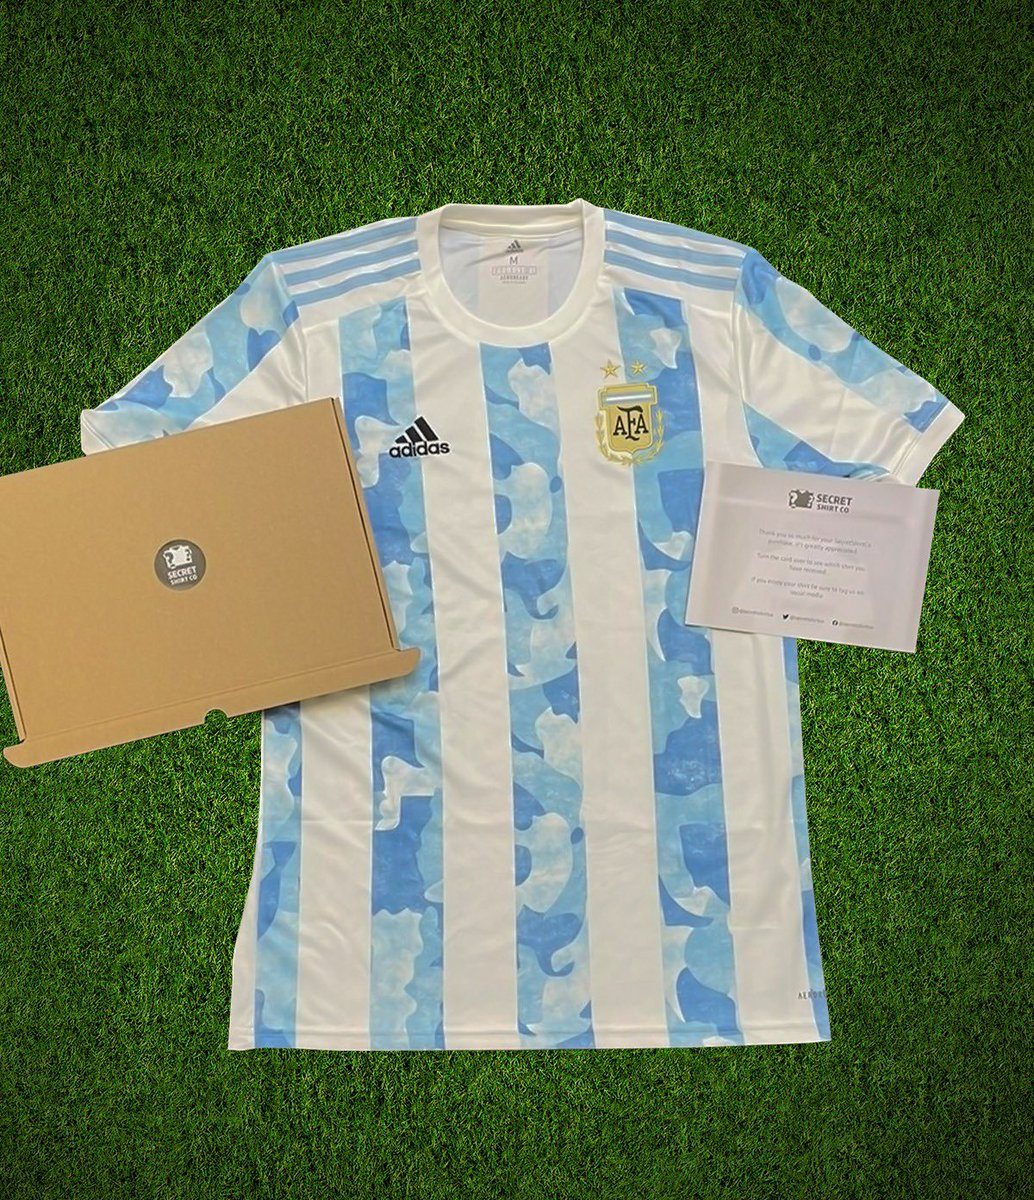 If Kelechi Iheanacho scores first vs West Brom tonight, we'll giveaway a https://t.co/0dDyzv85B2 box.   To enter:   🔃 Retweet this tweet 🤝 Follow us.  Good luck! 📦 https://t.co/cUTeEj1hyR